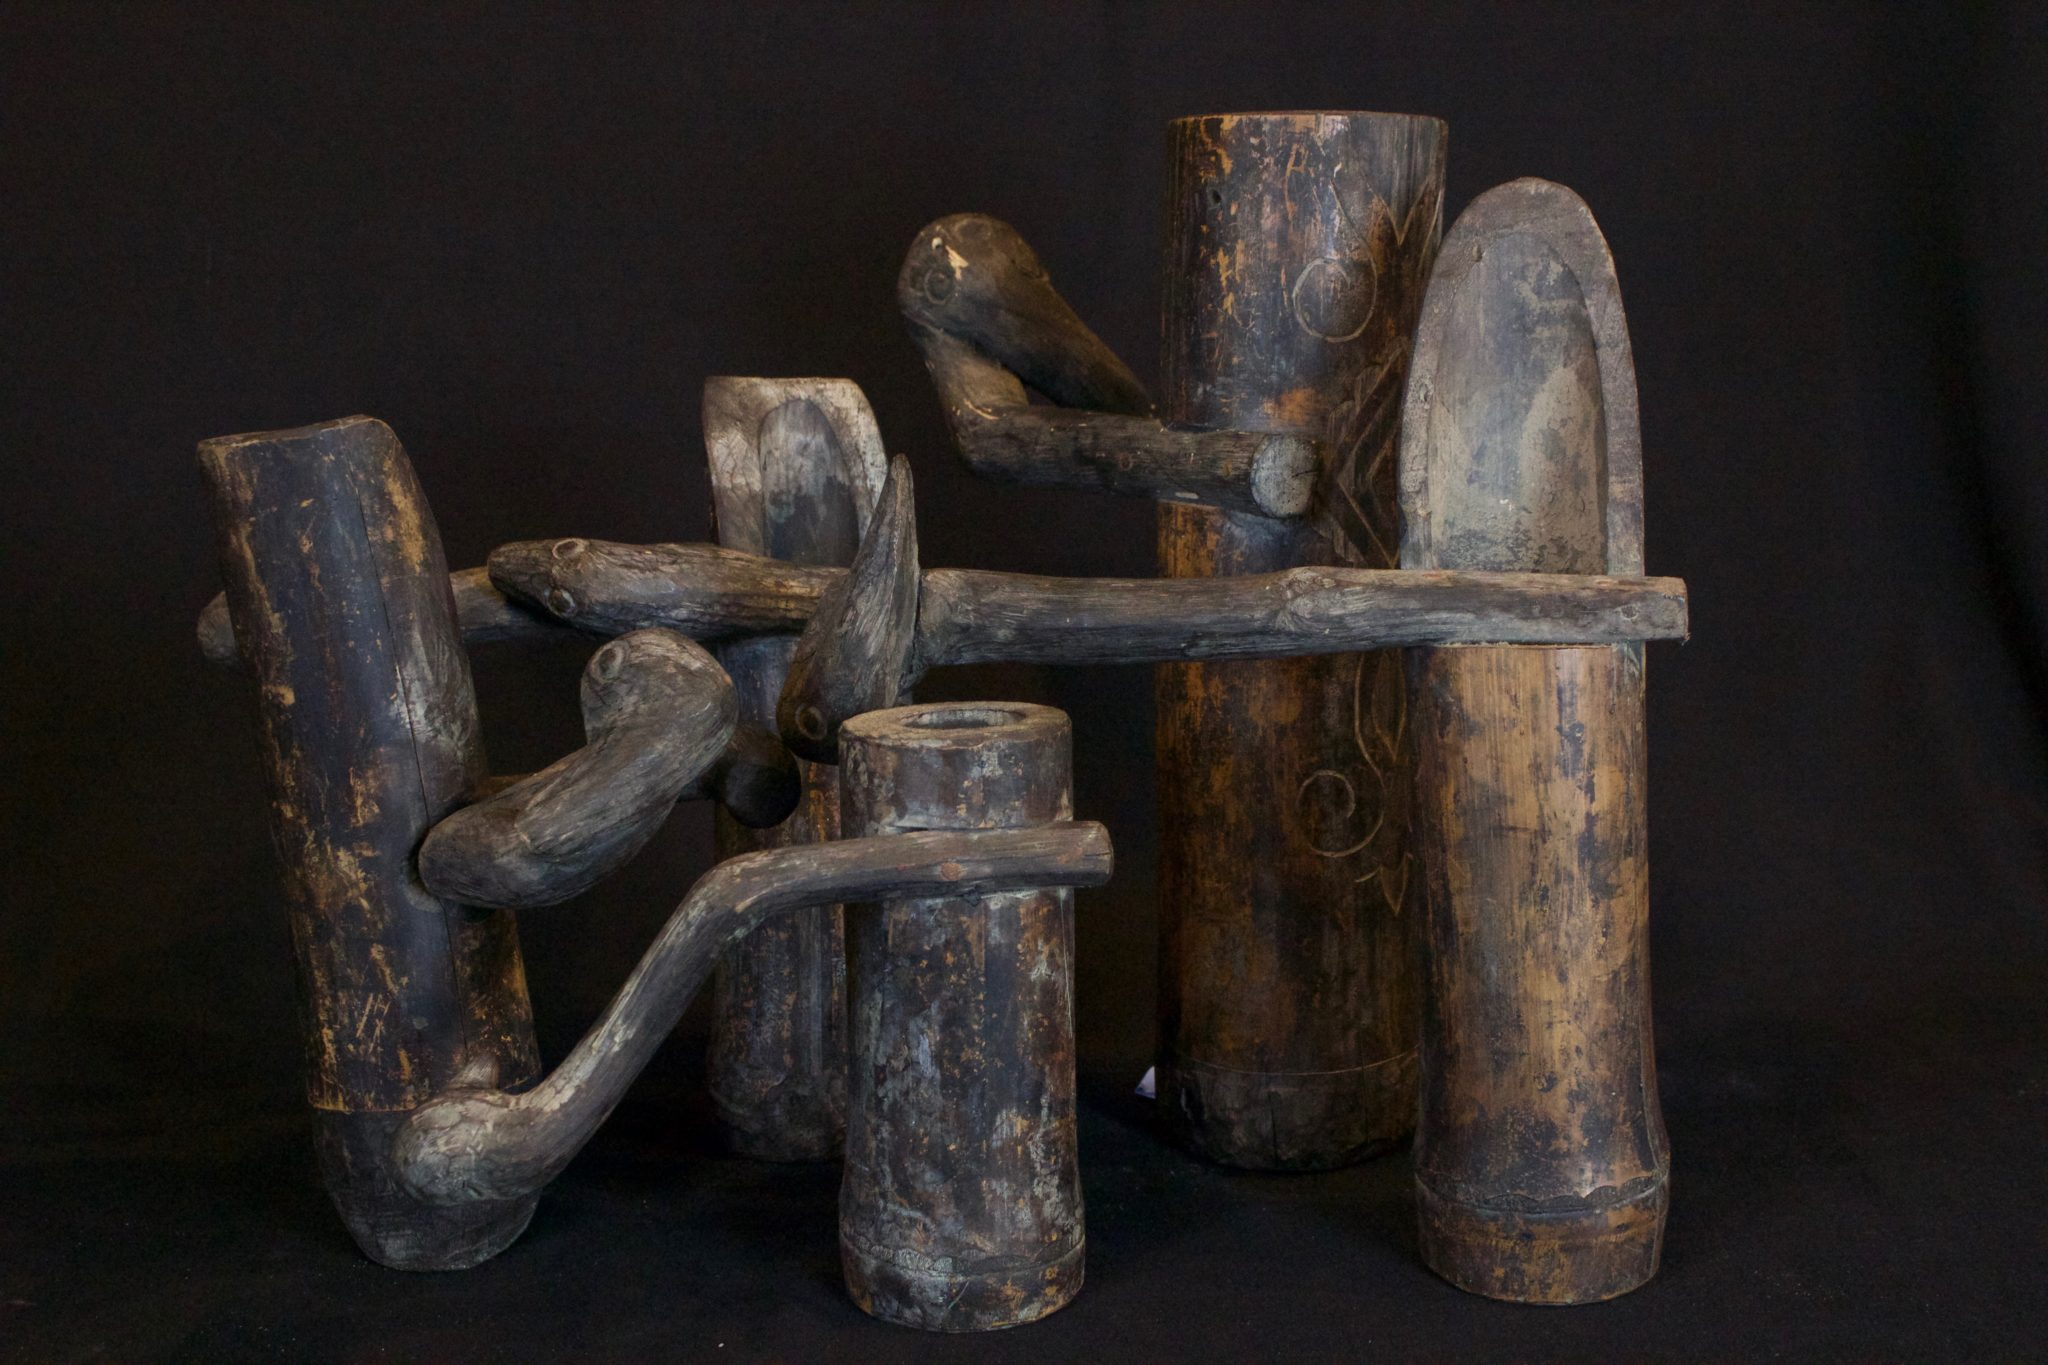 "Shaman Sacred Water and Herb Scoop, Lombok Island, Lesser Sunda Islands, Indonesia, Mid 20th c, Wood, bamboo, patinated with use and age. Used for scooping holy water and medicinal herbs for healing rituals. Dimensions left to right: (left - 9 ¼"" x 6 ¼"" x 4 ½"", $160.); (rear middle - 9 ¼"" x 9 ½"" x 3 ½"", $160.); (front middle - 6 ¼"" 7 ¾"" x 2 ½"", $120.); (rear right - 12 ¼"" x 9 ¼"" x 3 ½"", $280.); (right front - 11 ½"" x 10"" x 3 ½"", $160.)"